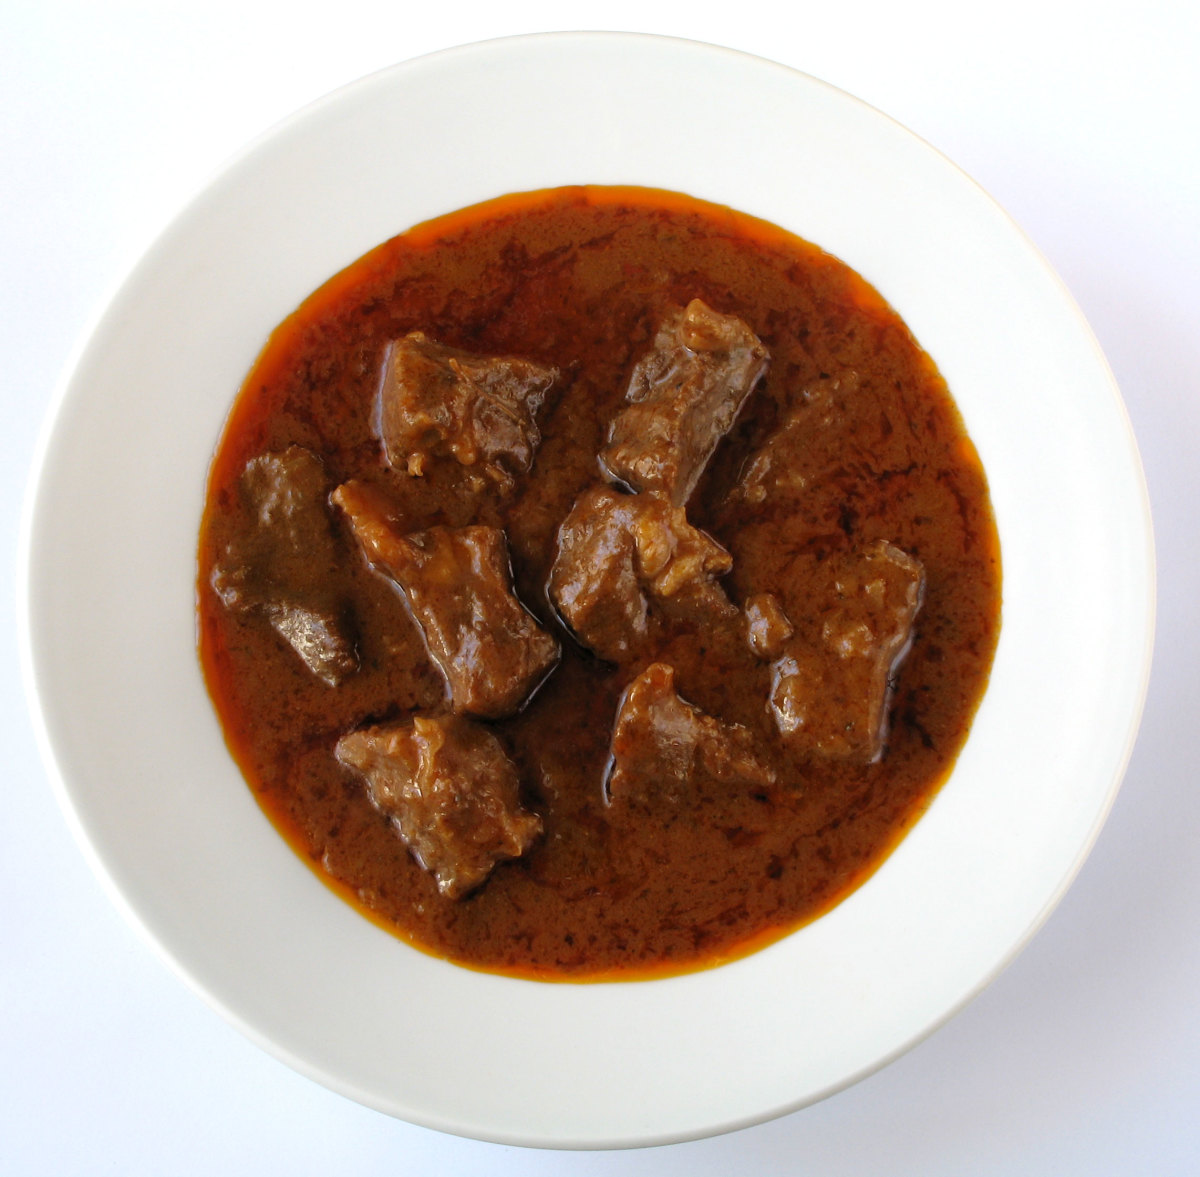 Cantonese Beef Stew with White Turnips (Daikon Radish)